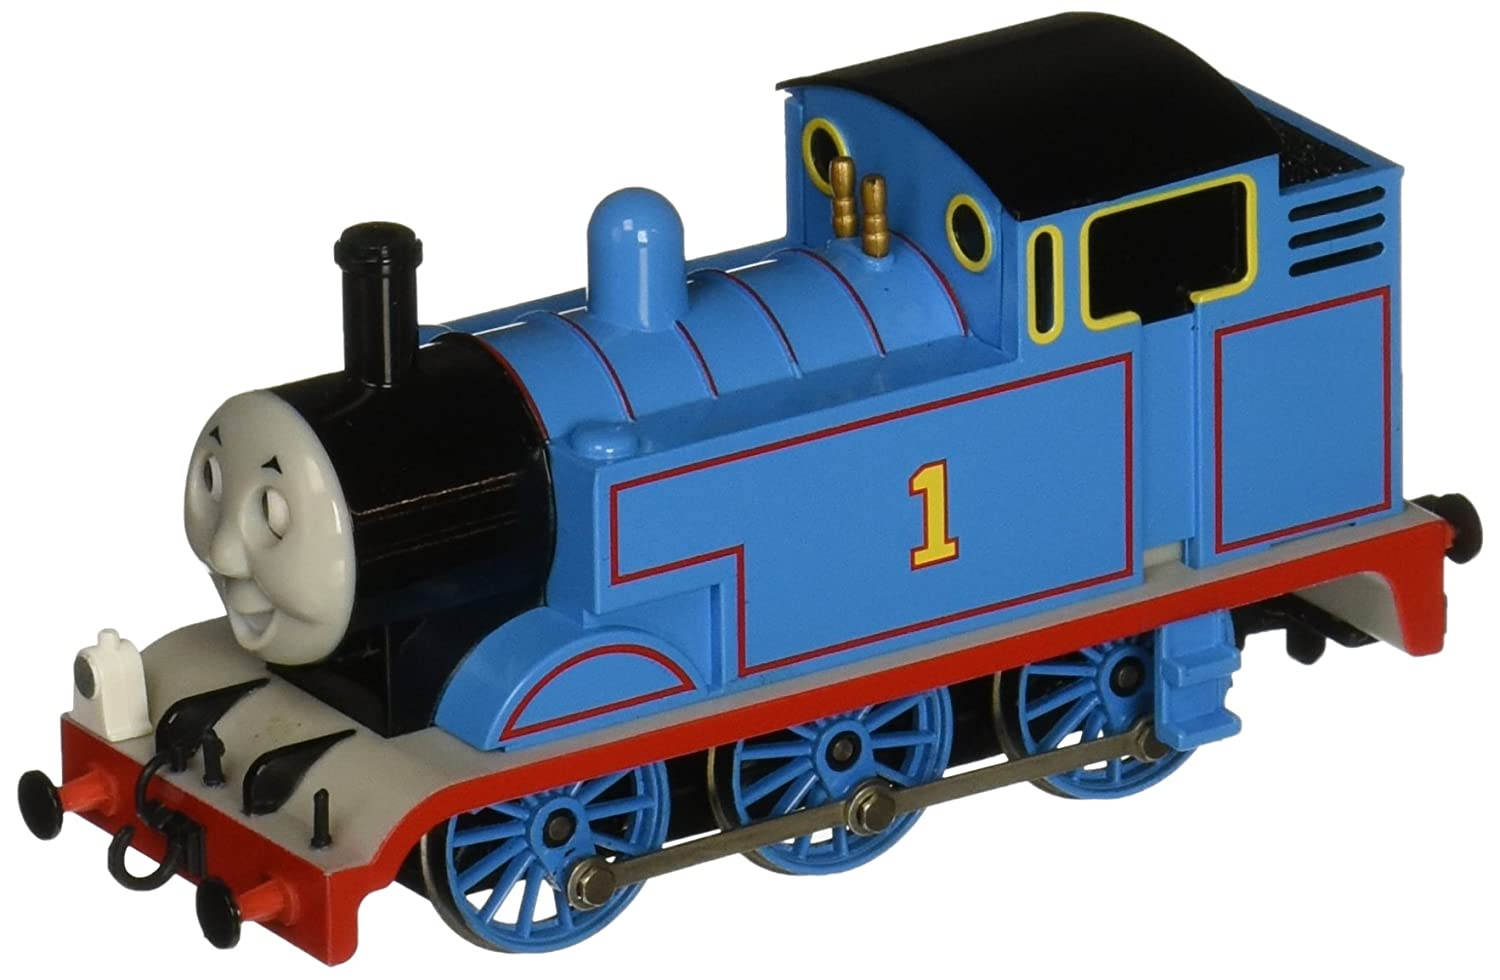 Bachmann Industries Thomas The Tank Engine Locomotive with Analog Sound & Moving Eyes Bachmann Industries Inc. 58701